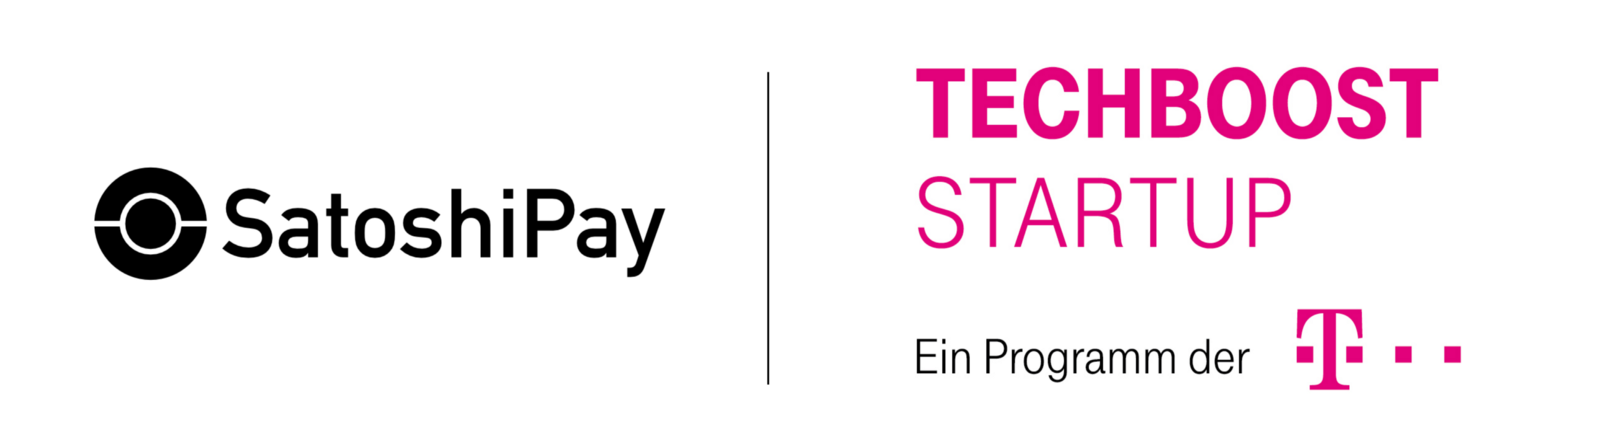 SatoshiPay joins Deutsche Telekom\'s TechBoost program